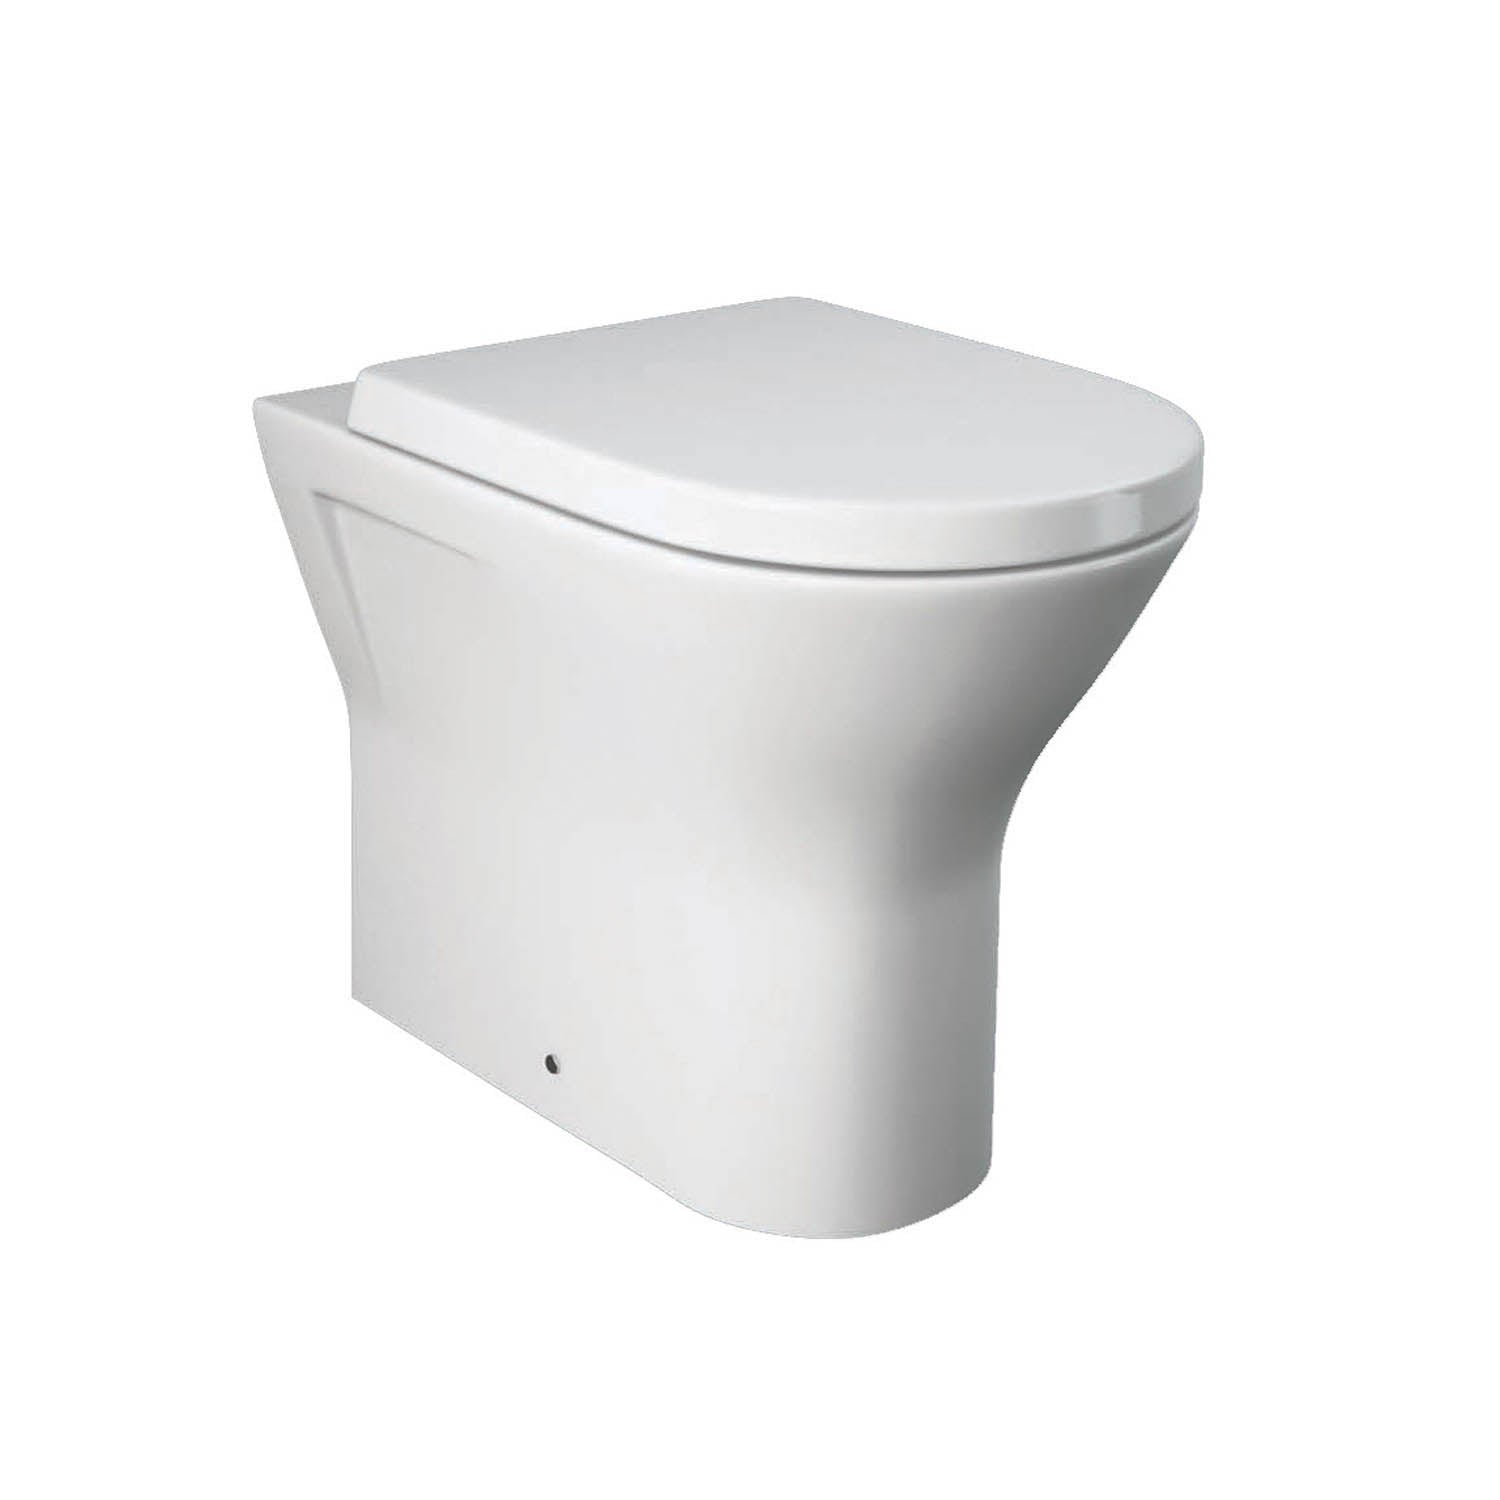 425mm Vesta Comfort Height Back to Wall Toilet without a seat and cover on a white background